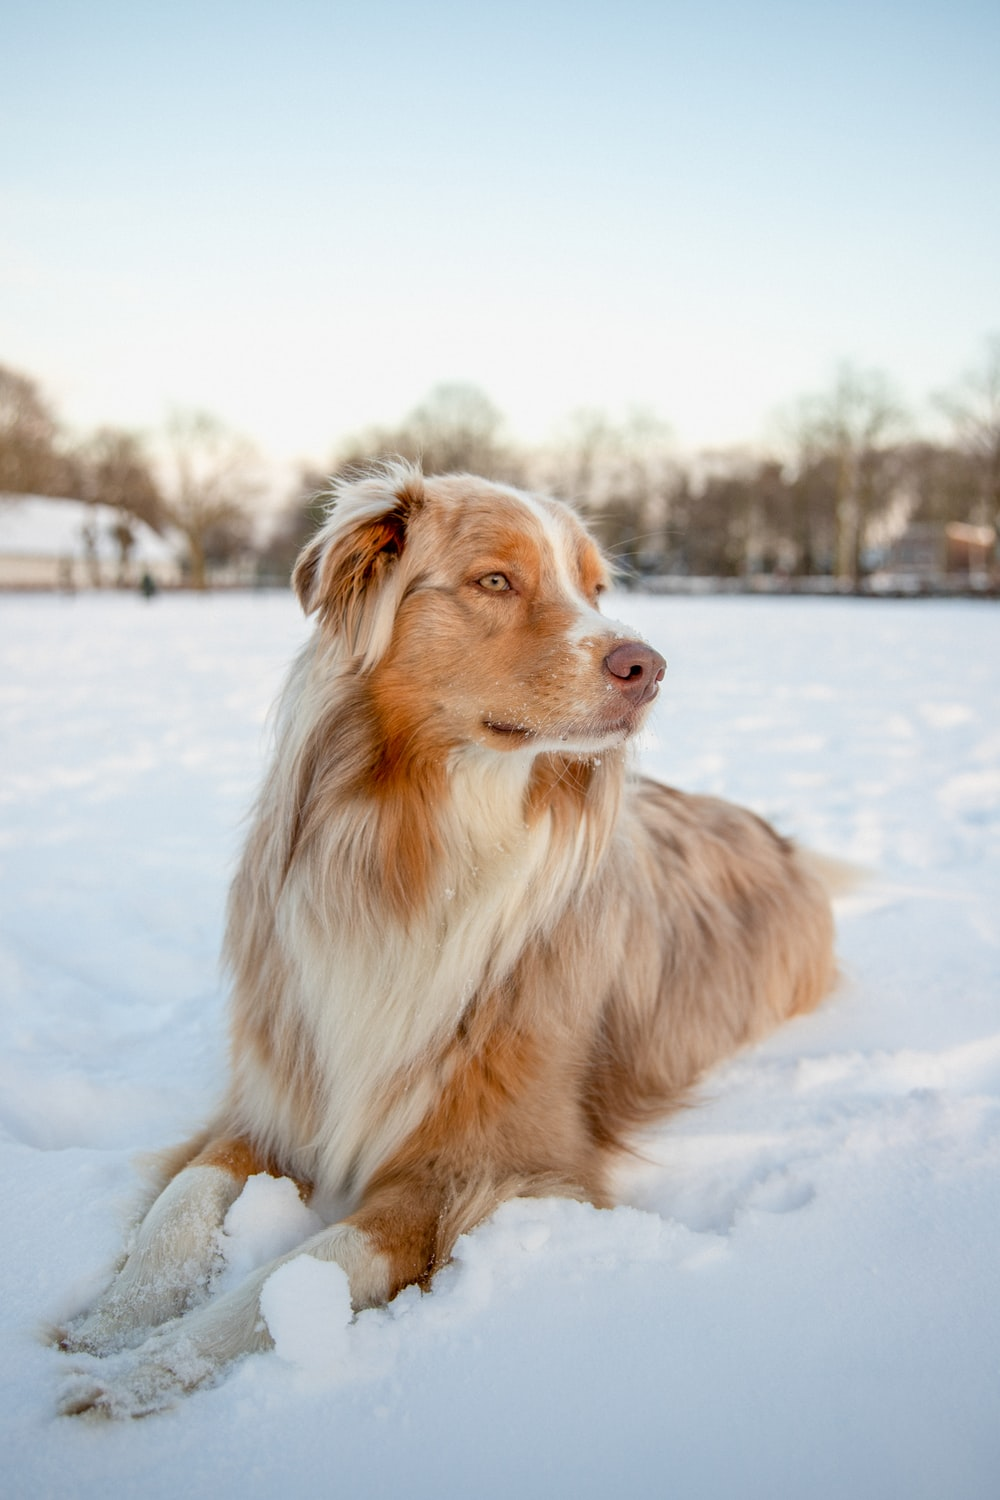 brown and white long coat medium dog on snow covered ground during daytime